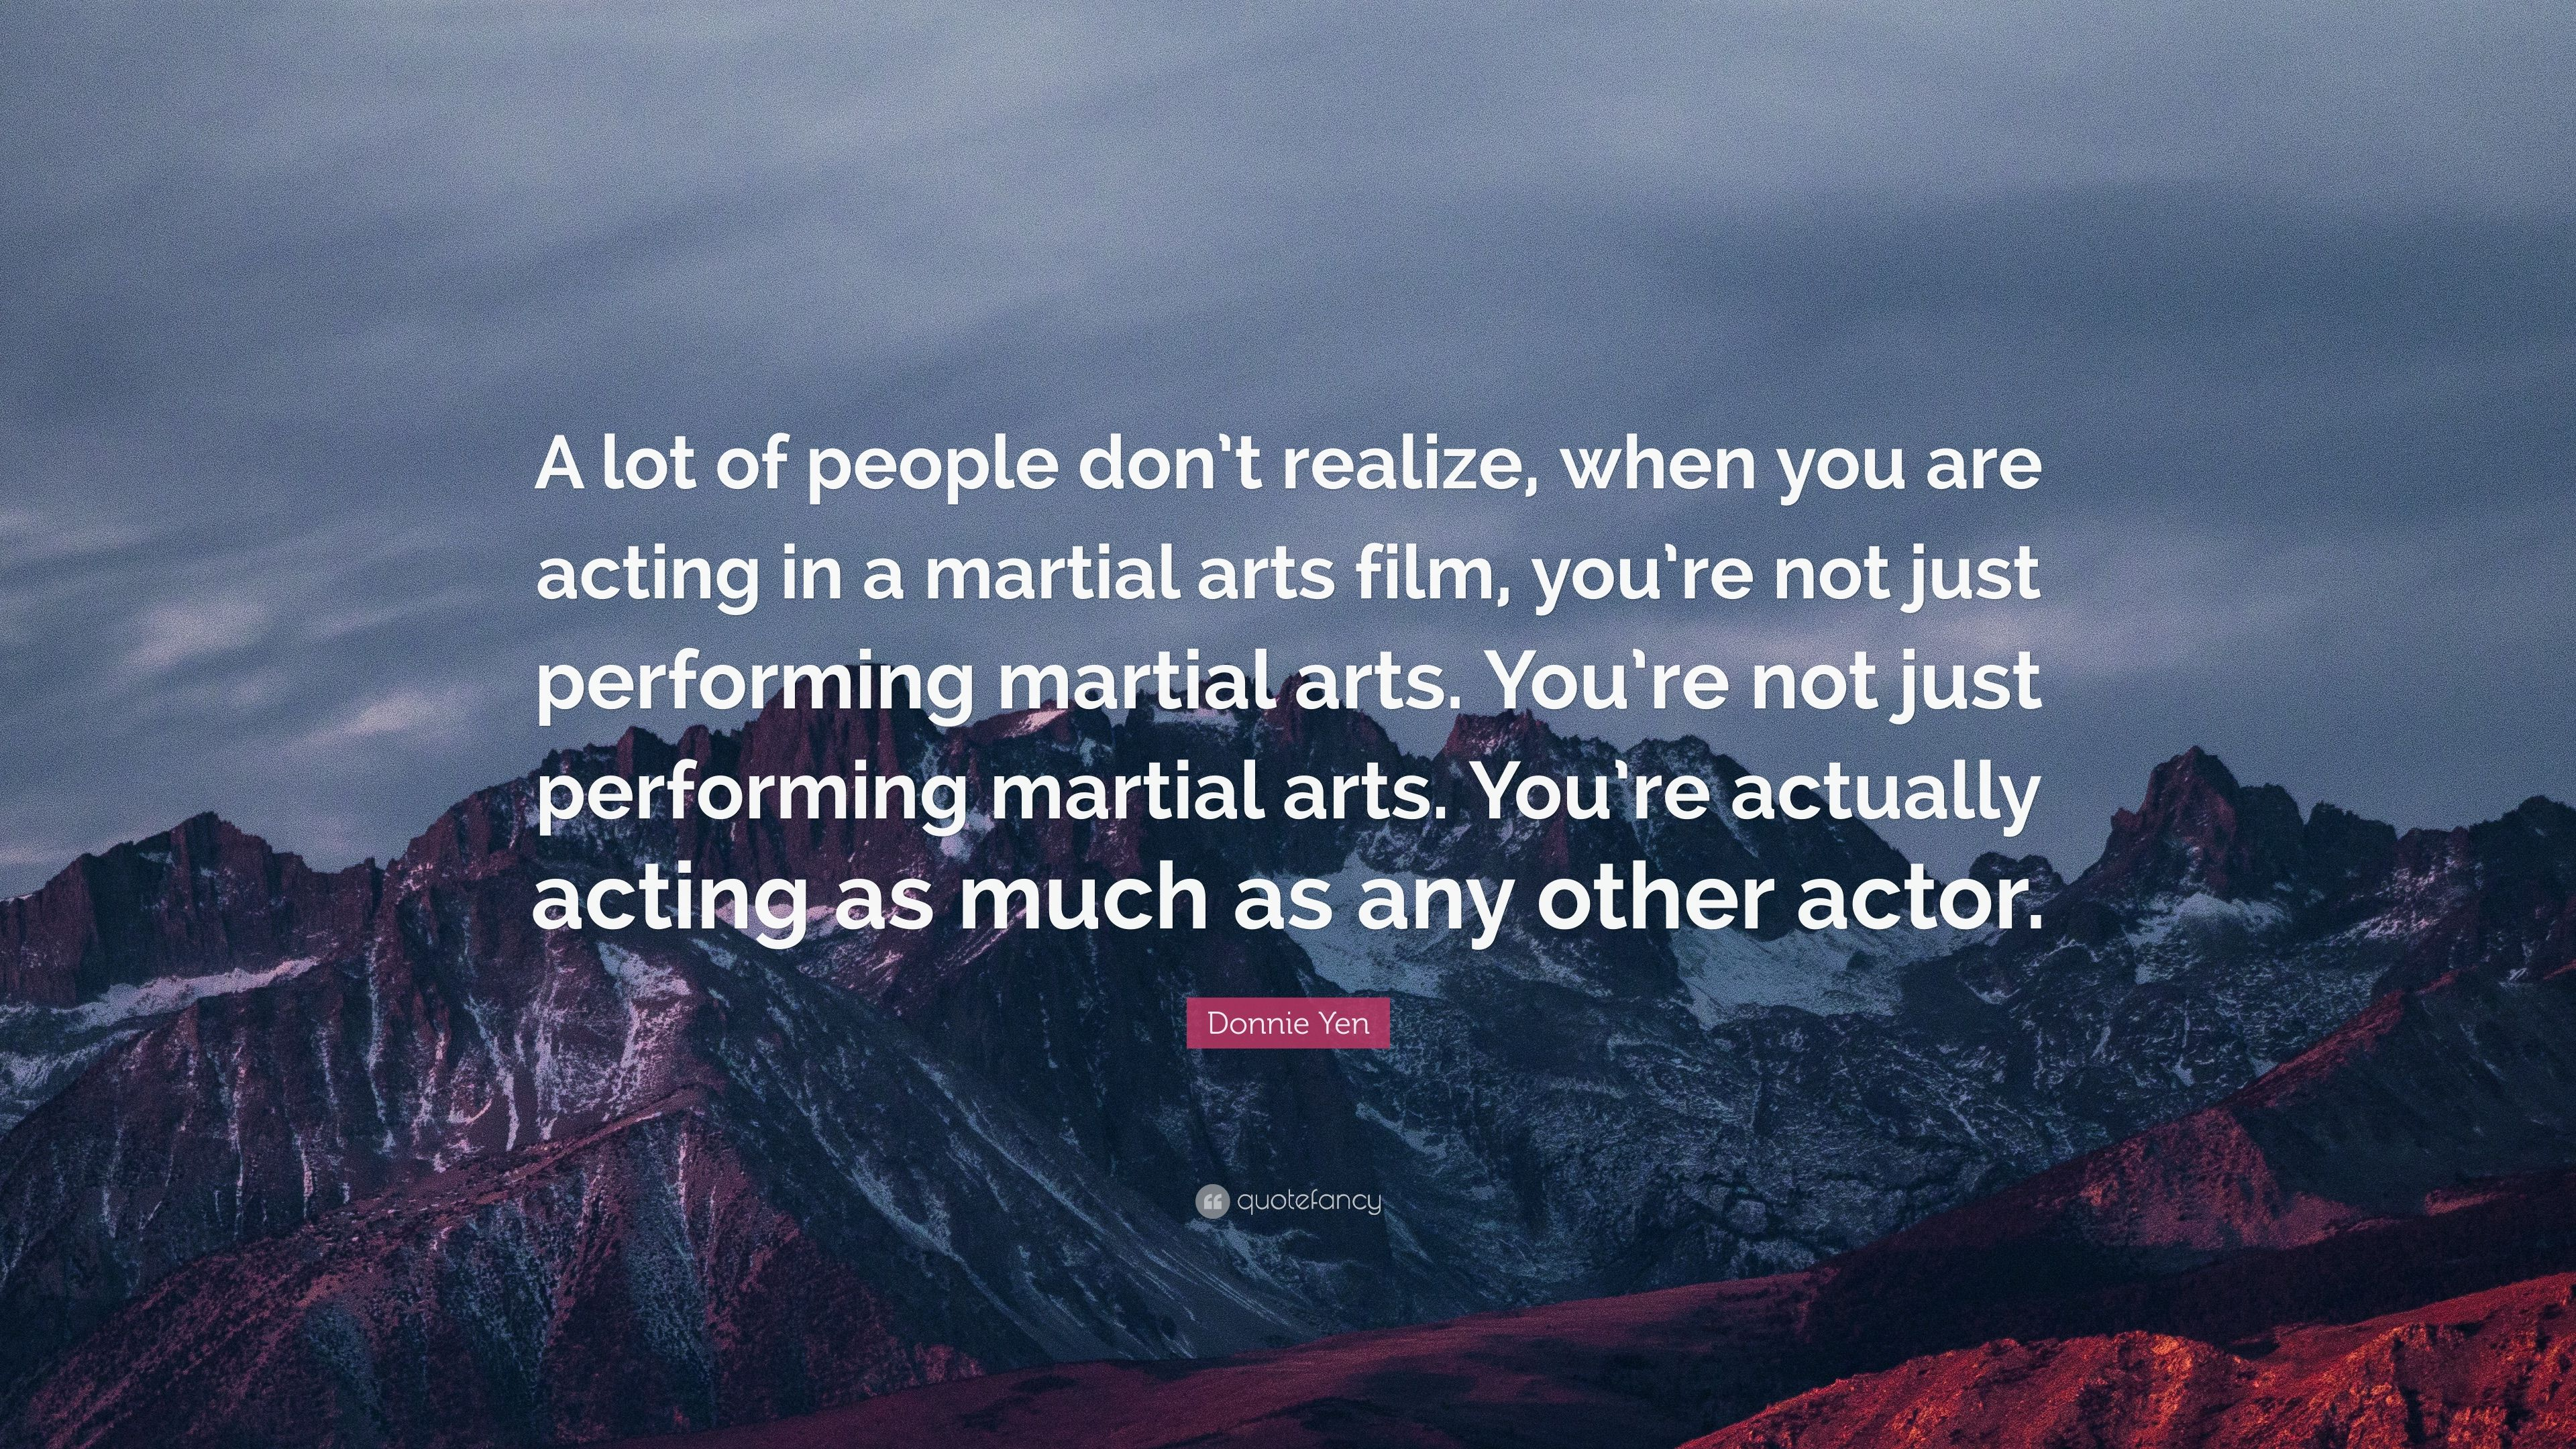 Donnie Yen Quote A Lot Of People Don T Realize When You Are Acting In A Martial Arts Film You Re Not Just Performing Martial Arts You 7 Wallpapers Quotefancy